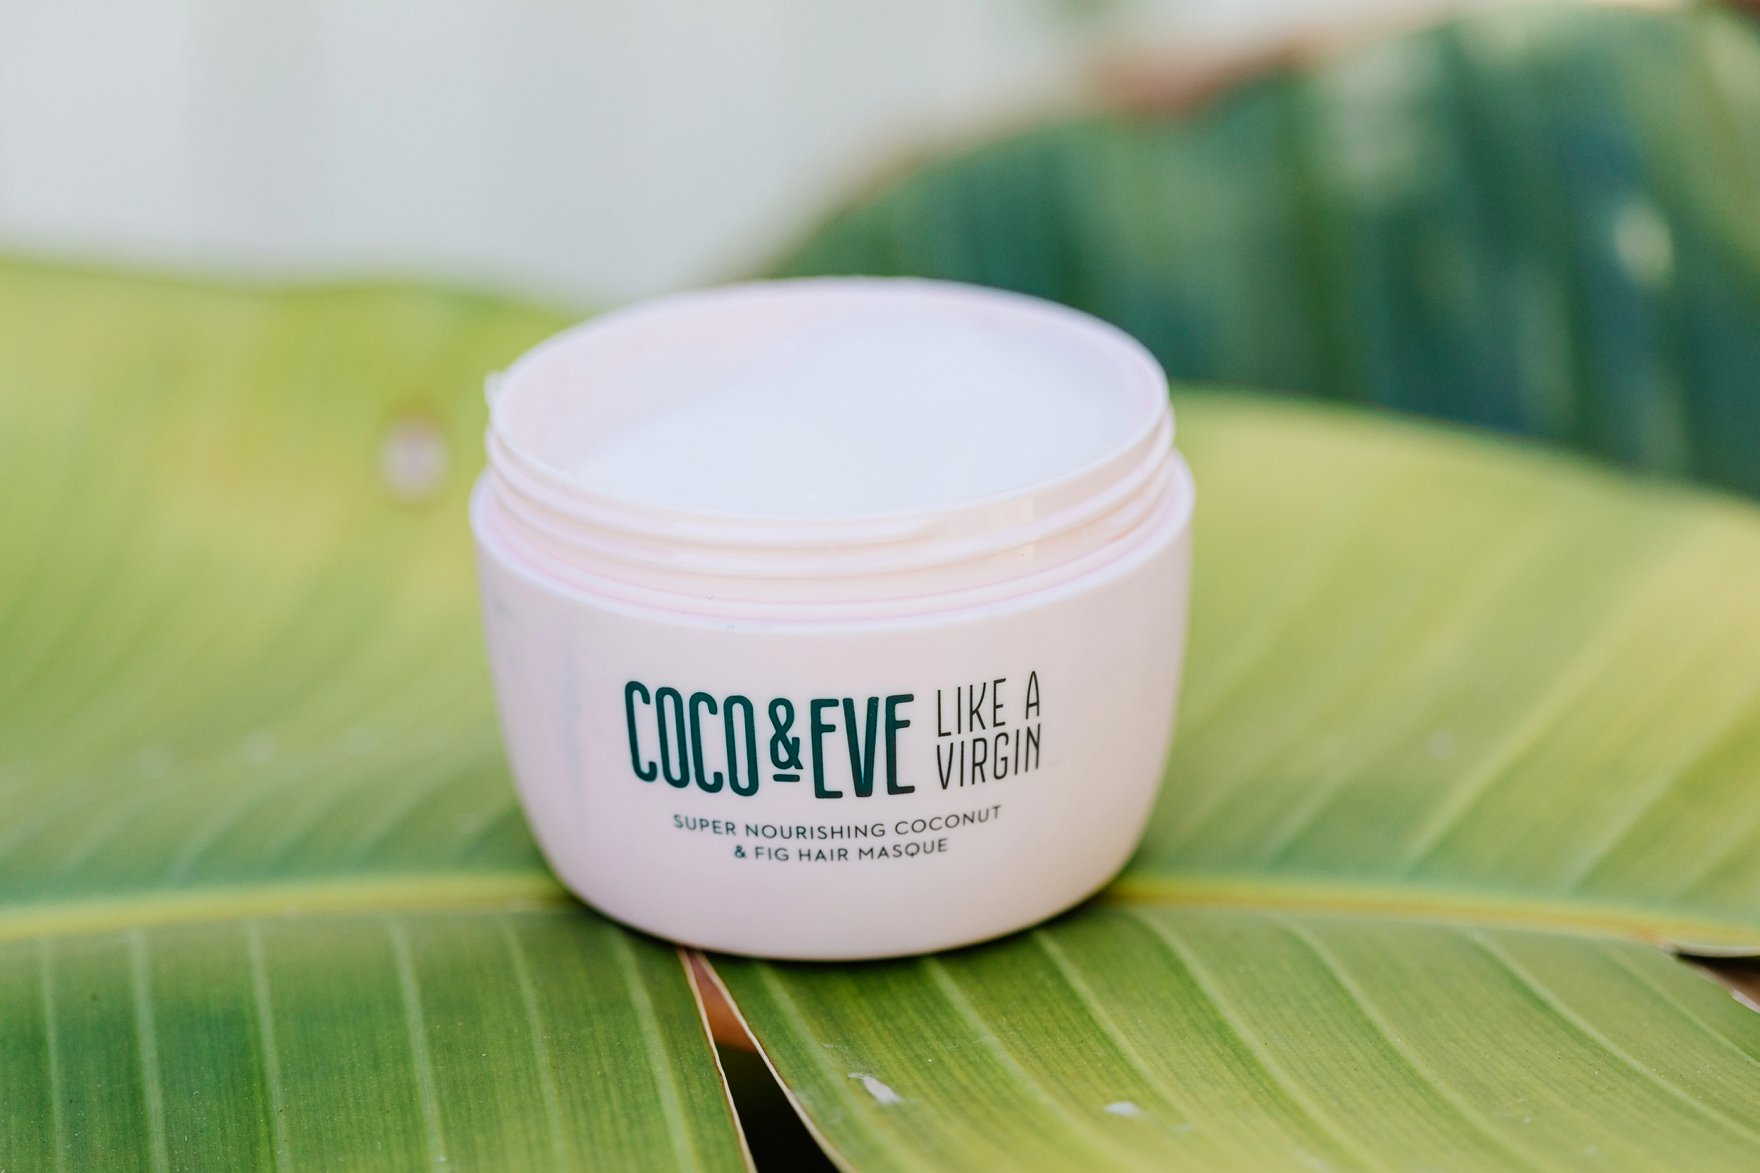 Coco and Eve hair mask conditioner